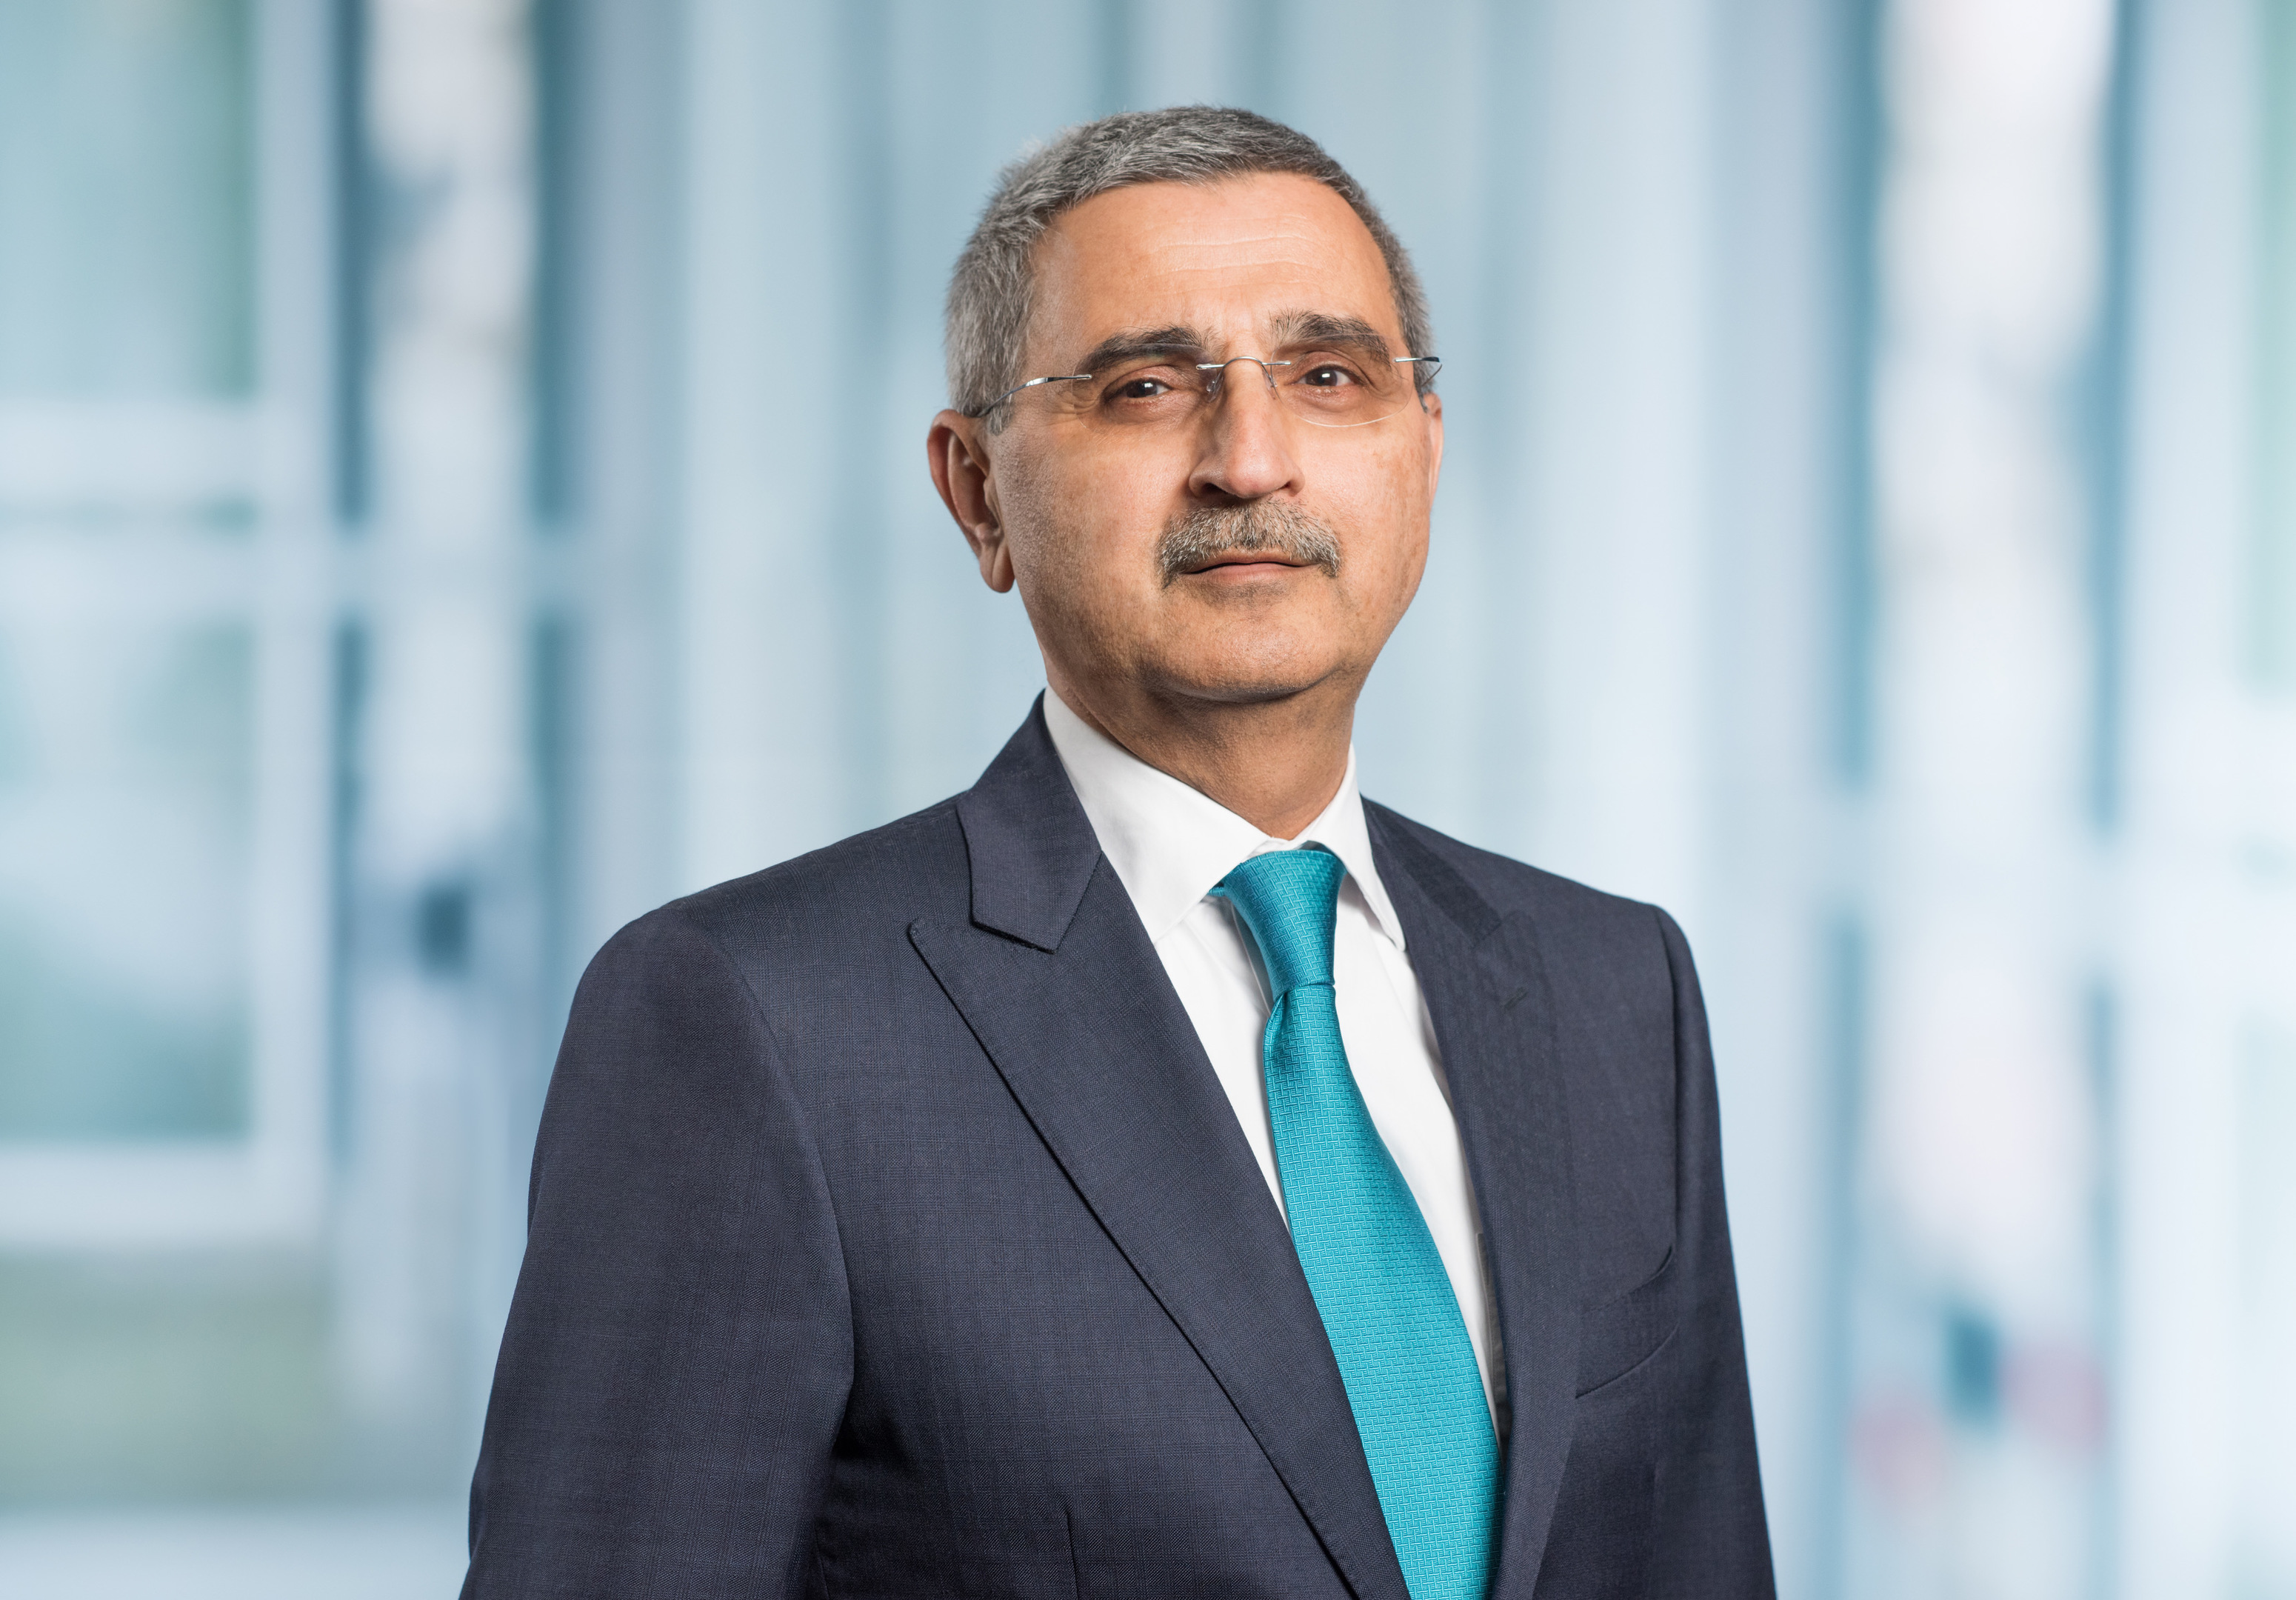 Bazmi Husain is Chief Technology Officer of the ABB Group.